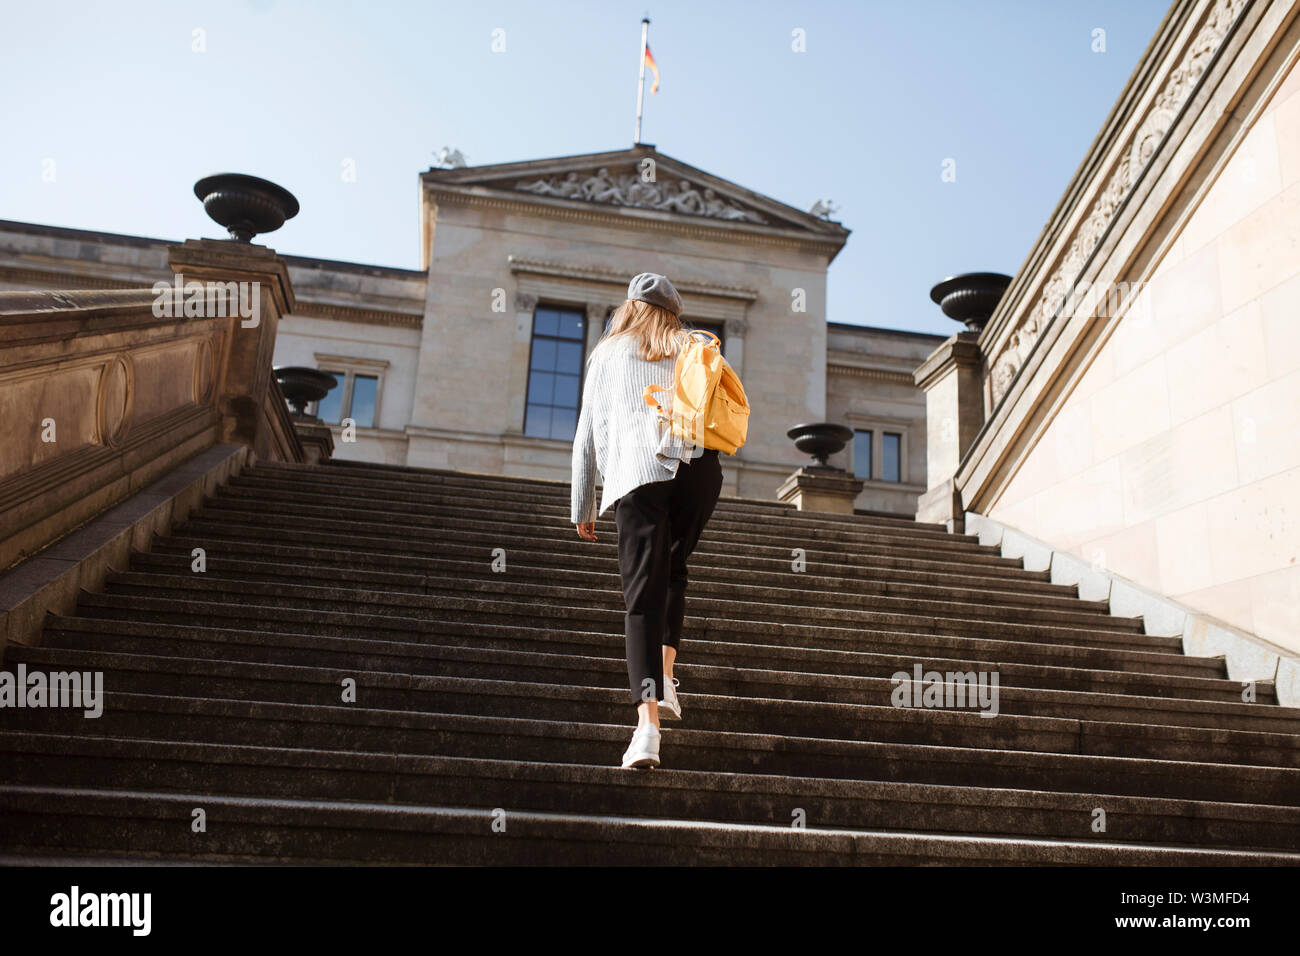 Young woman walking on steps in Berlin, Germany - Stock Image